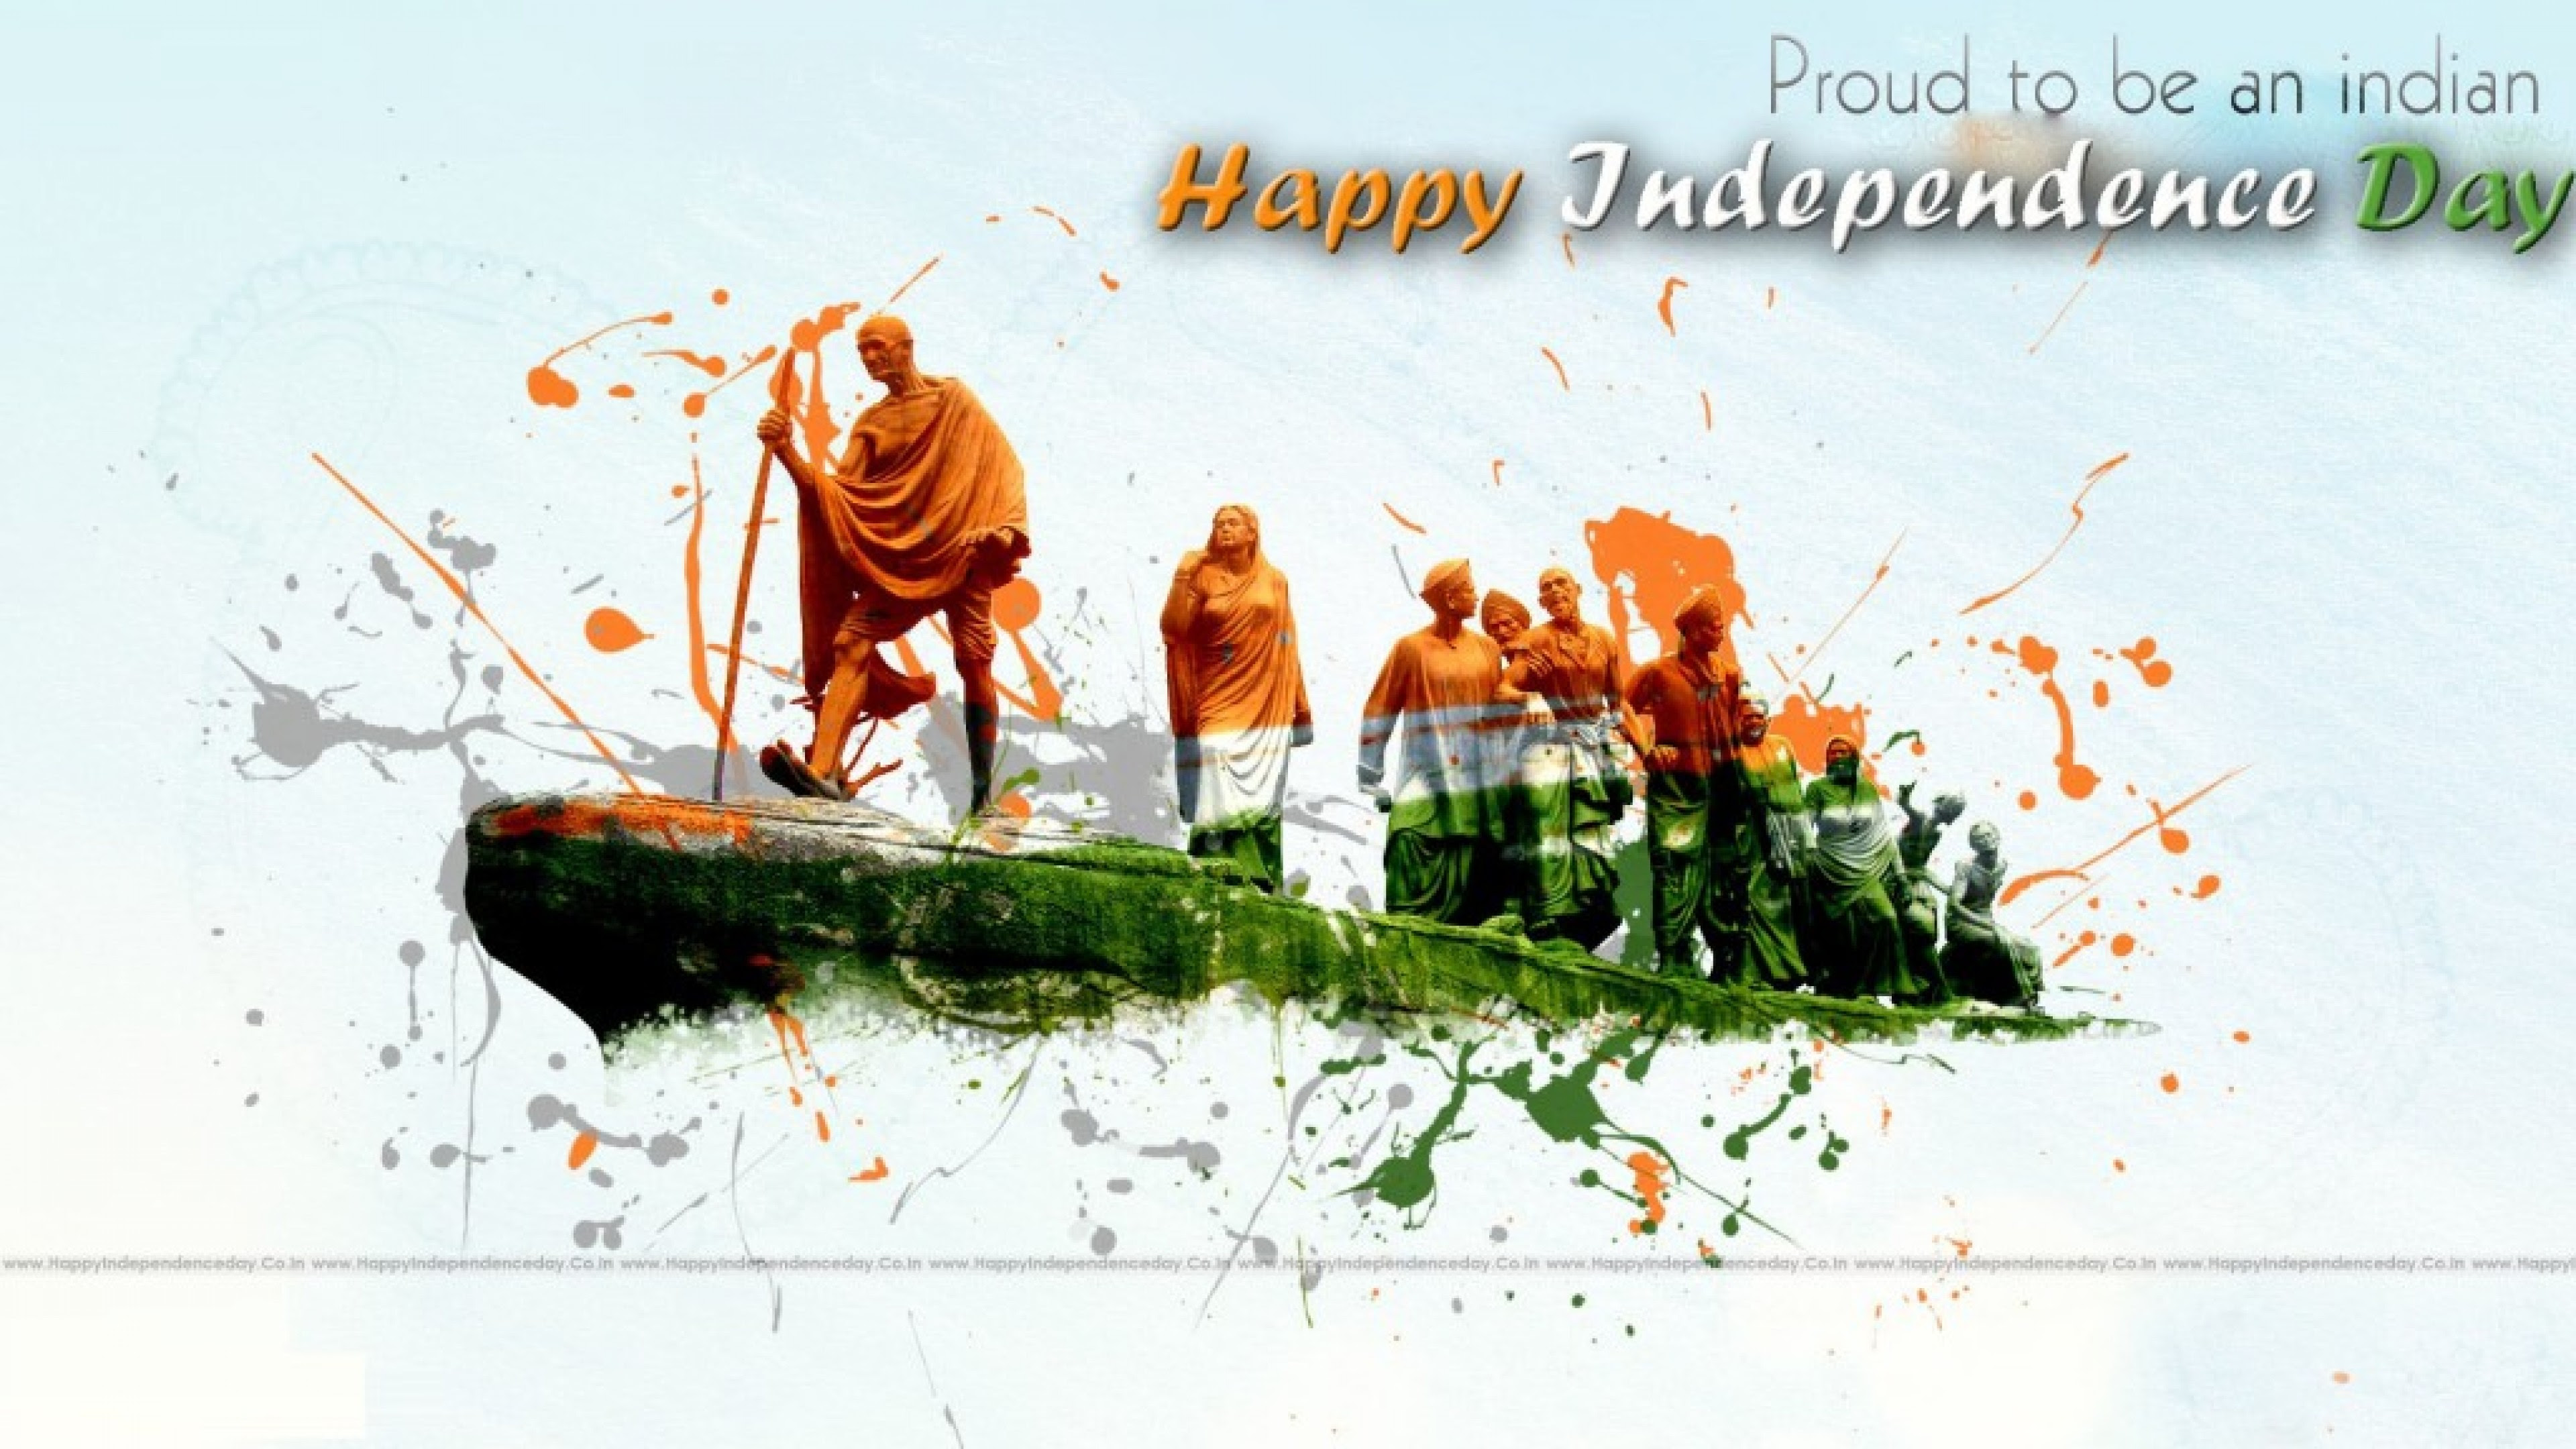 Indian Independence Day Hd Pic Wallpaper 2018 79 Images